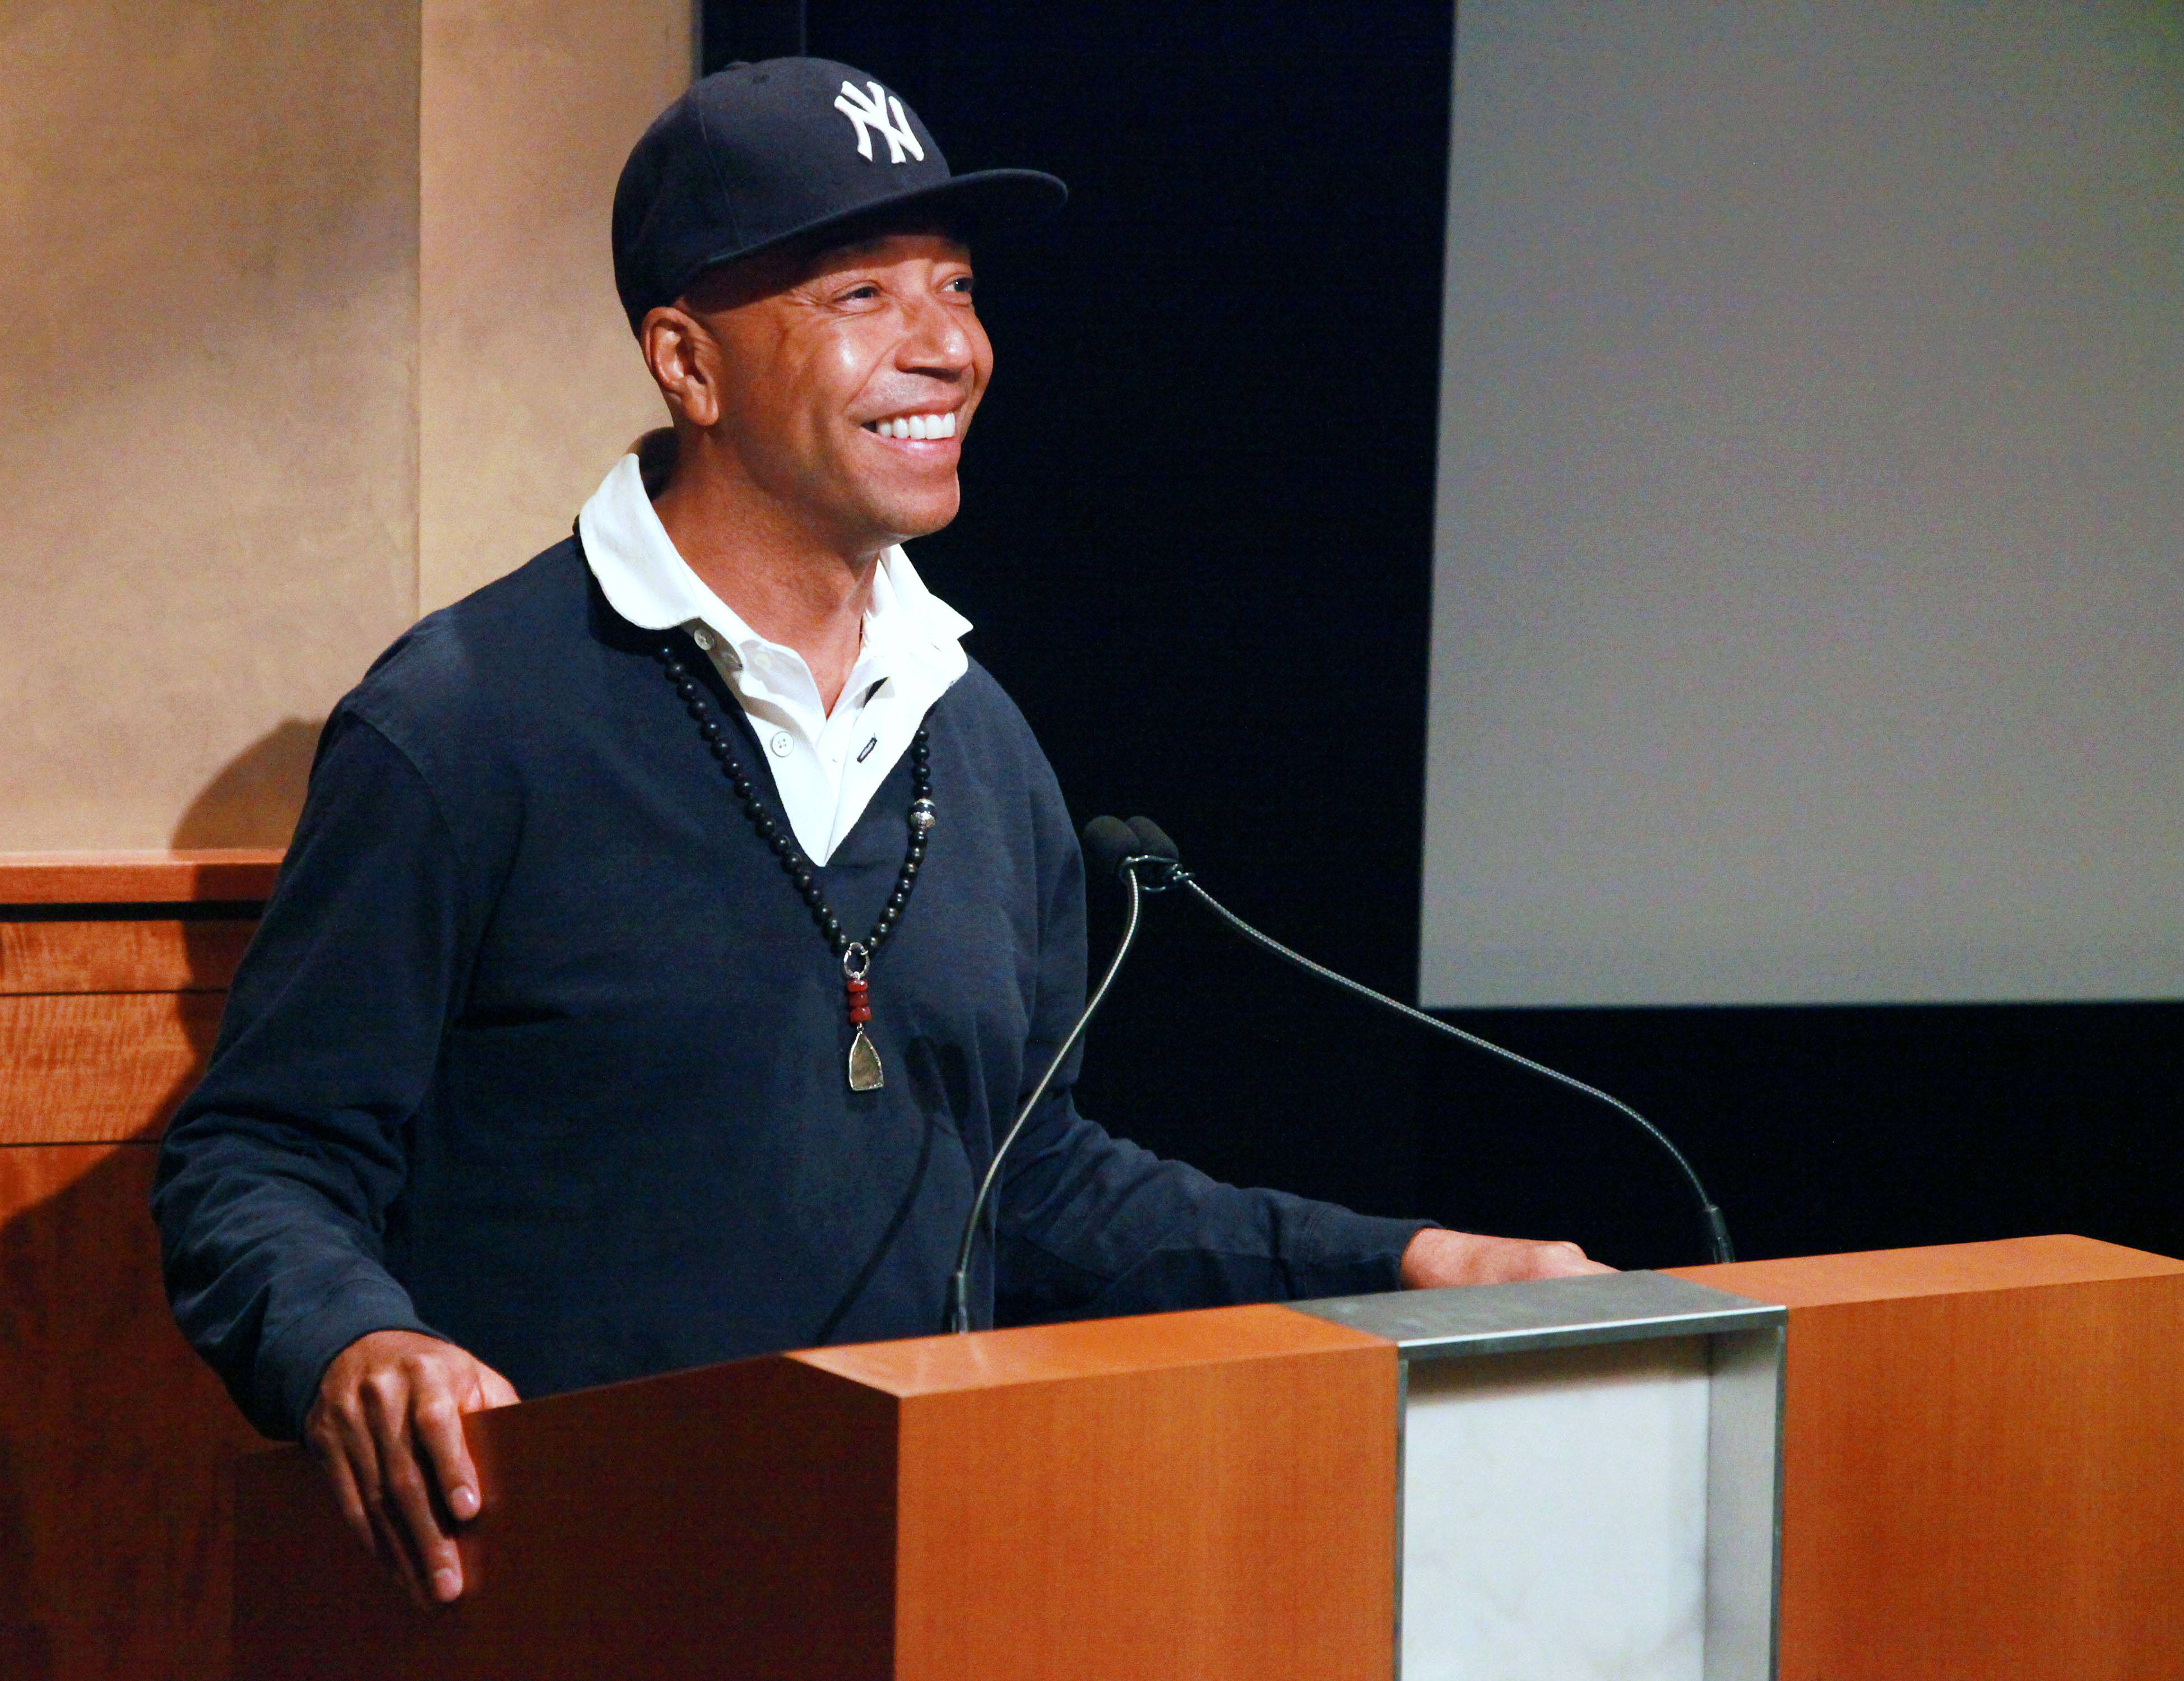 /content/dam/betcom/images/2011/03/Shows/LetsStayTogether/0211-bhm-entre-russell-simmons-2.jpg